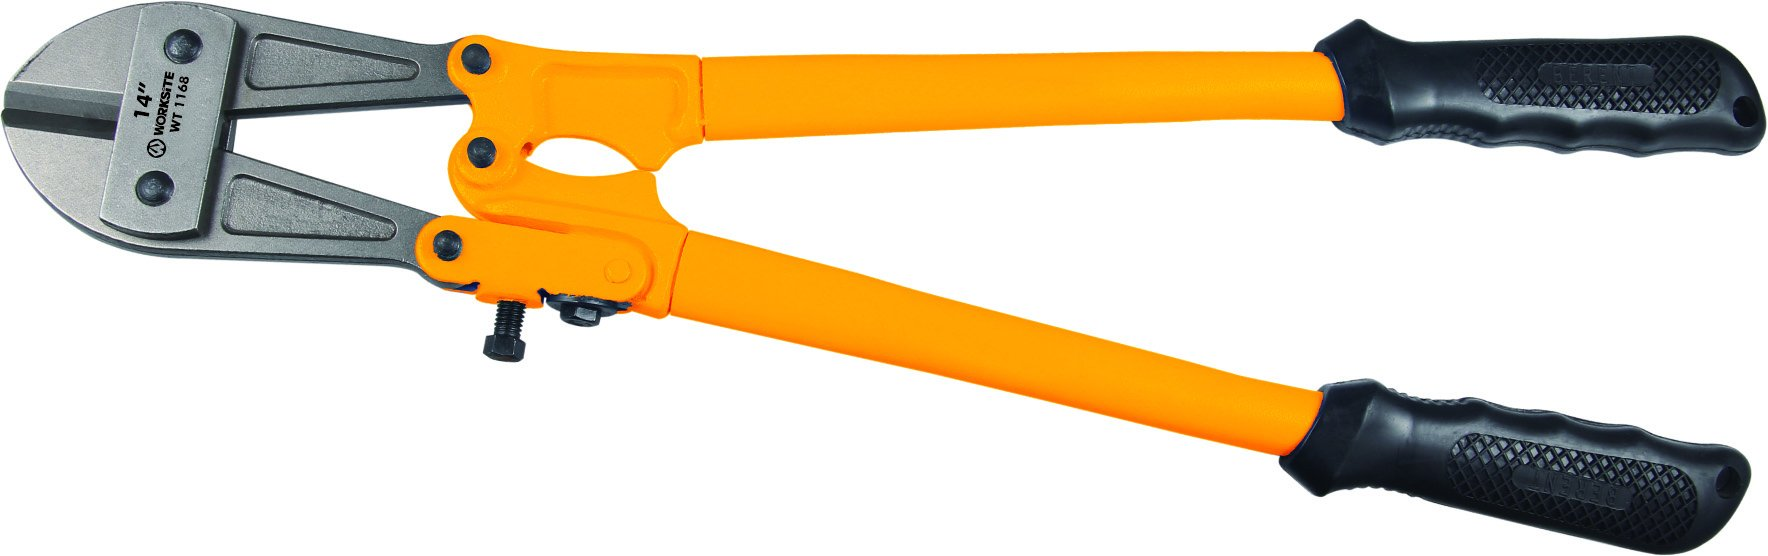 Altocraft USA WT1168 Worksite Heavy Duty Bolt Cutters, 14''